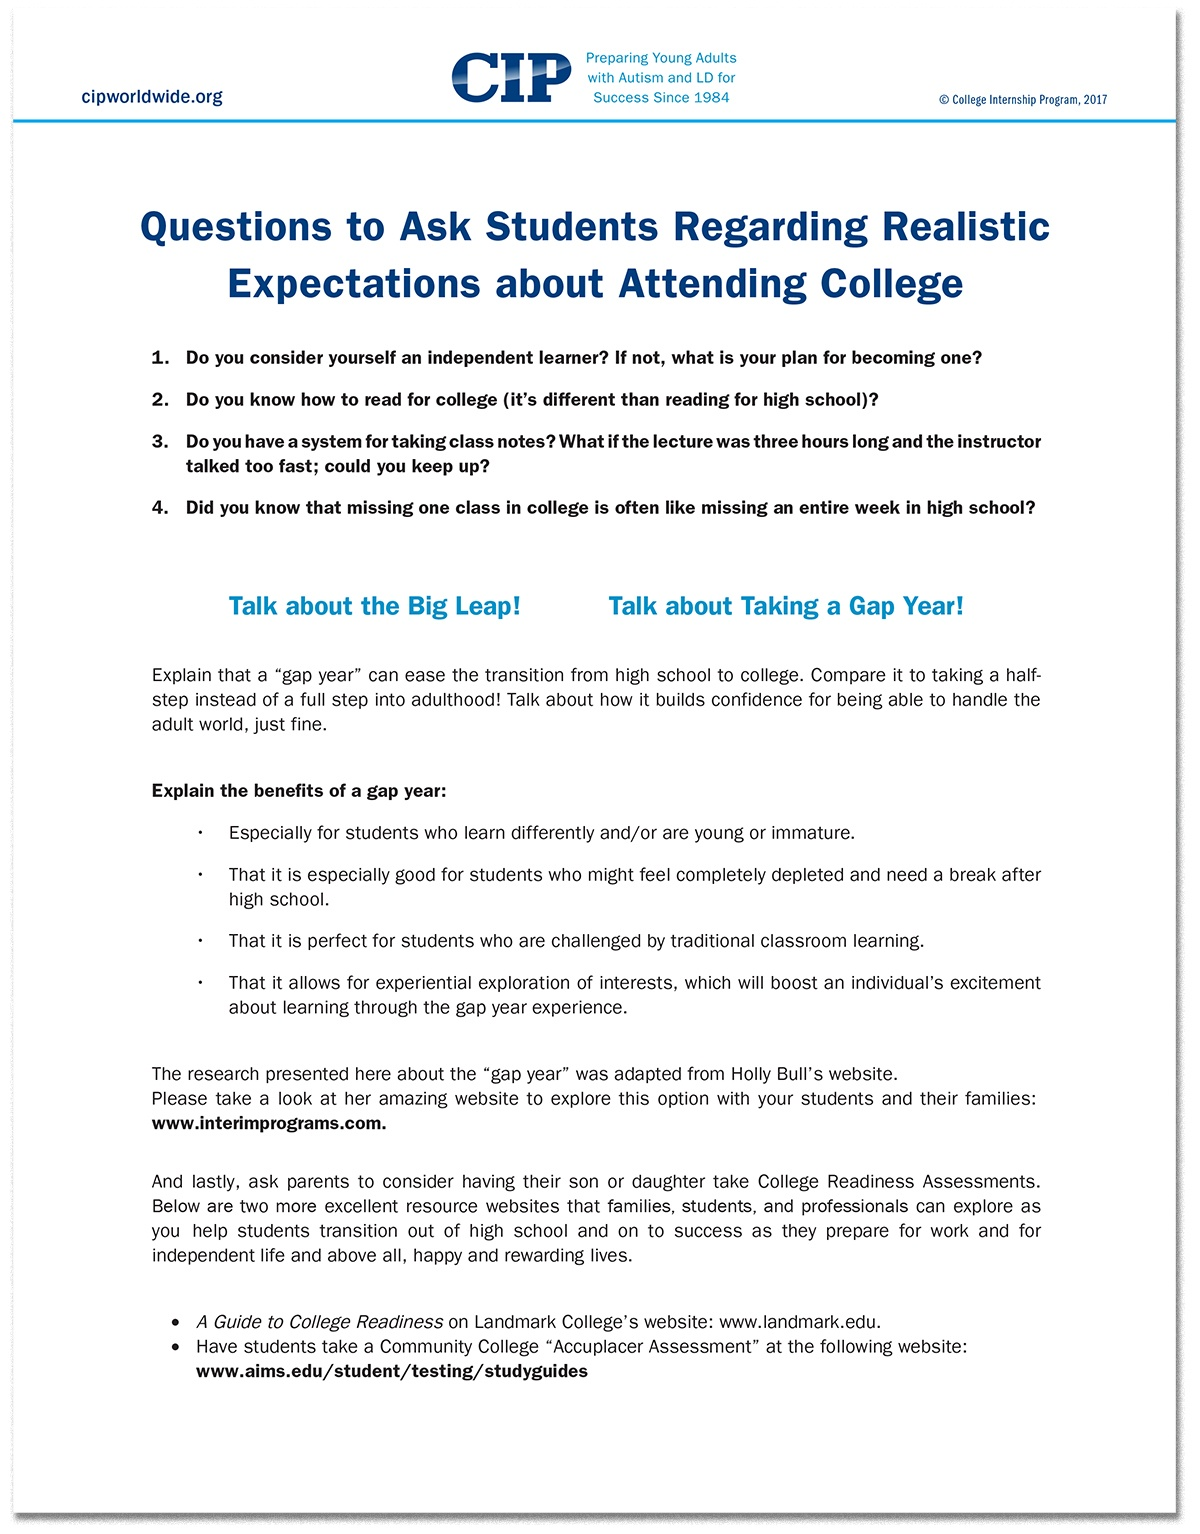 CIP Resource - Questions for College.jpg